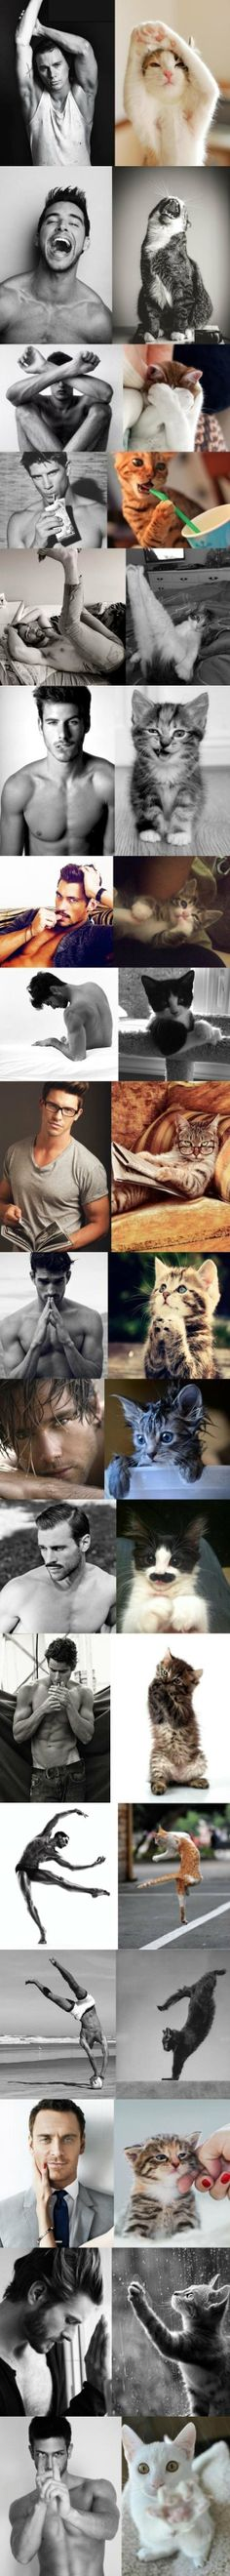 Men And Cats - www.meme-lol.com